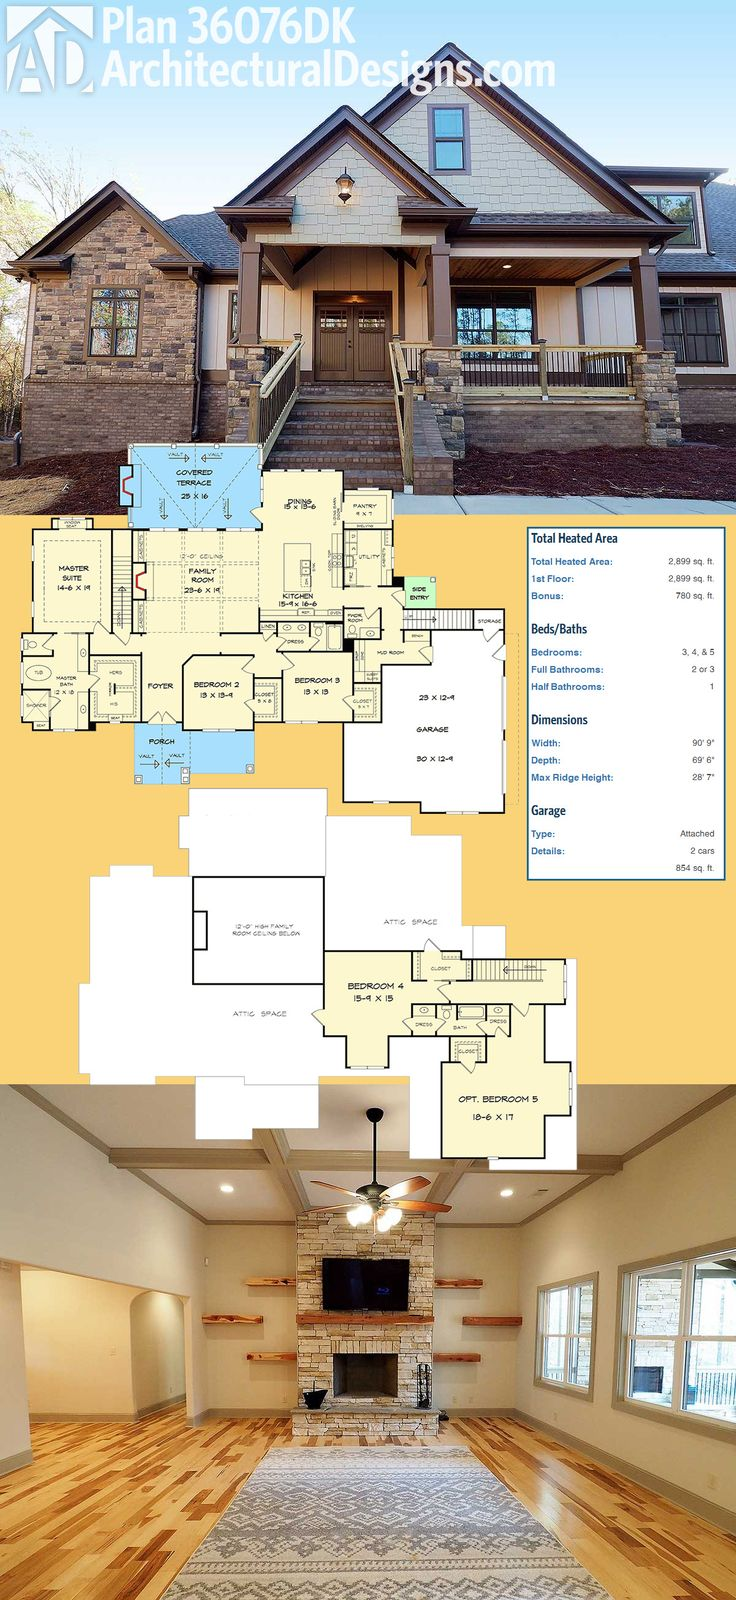 Best 20+ Floor Plans Ideas On Pinterest | House Floor Plans, House  Blueprints And Home Plans Part 83